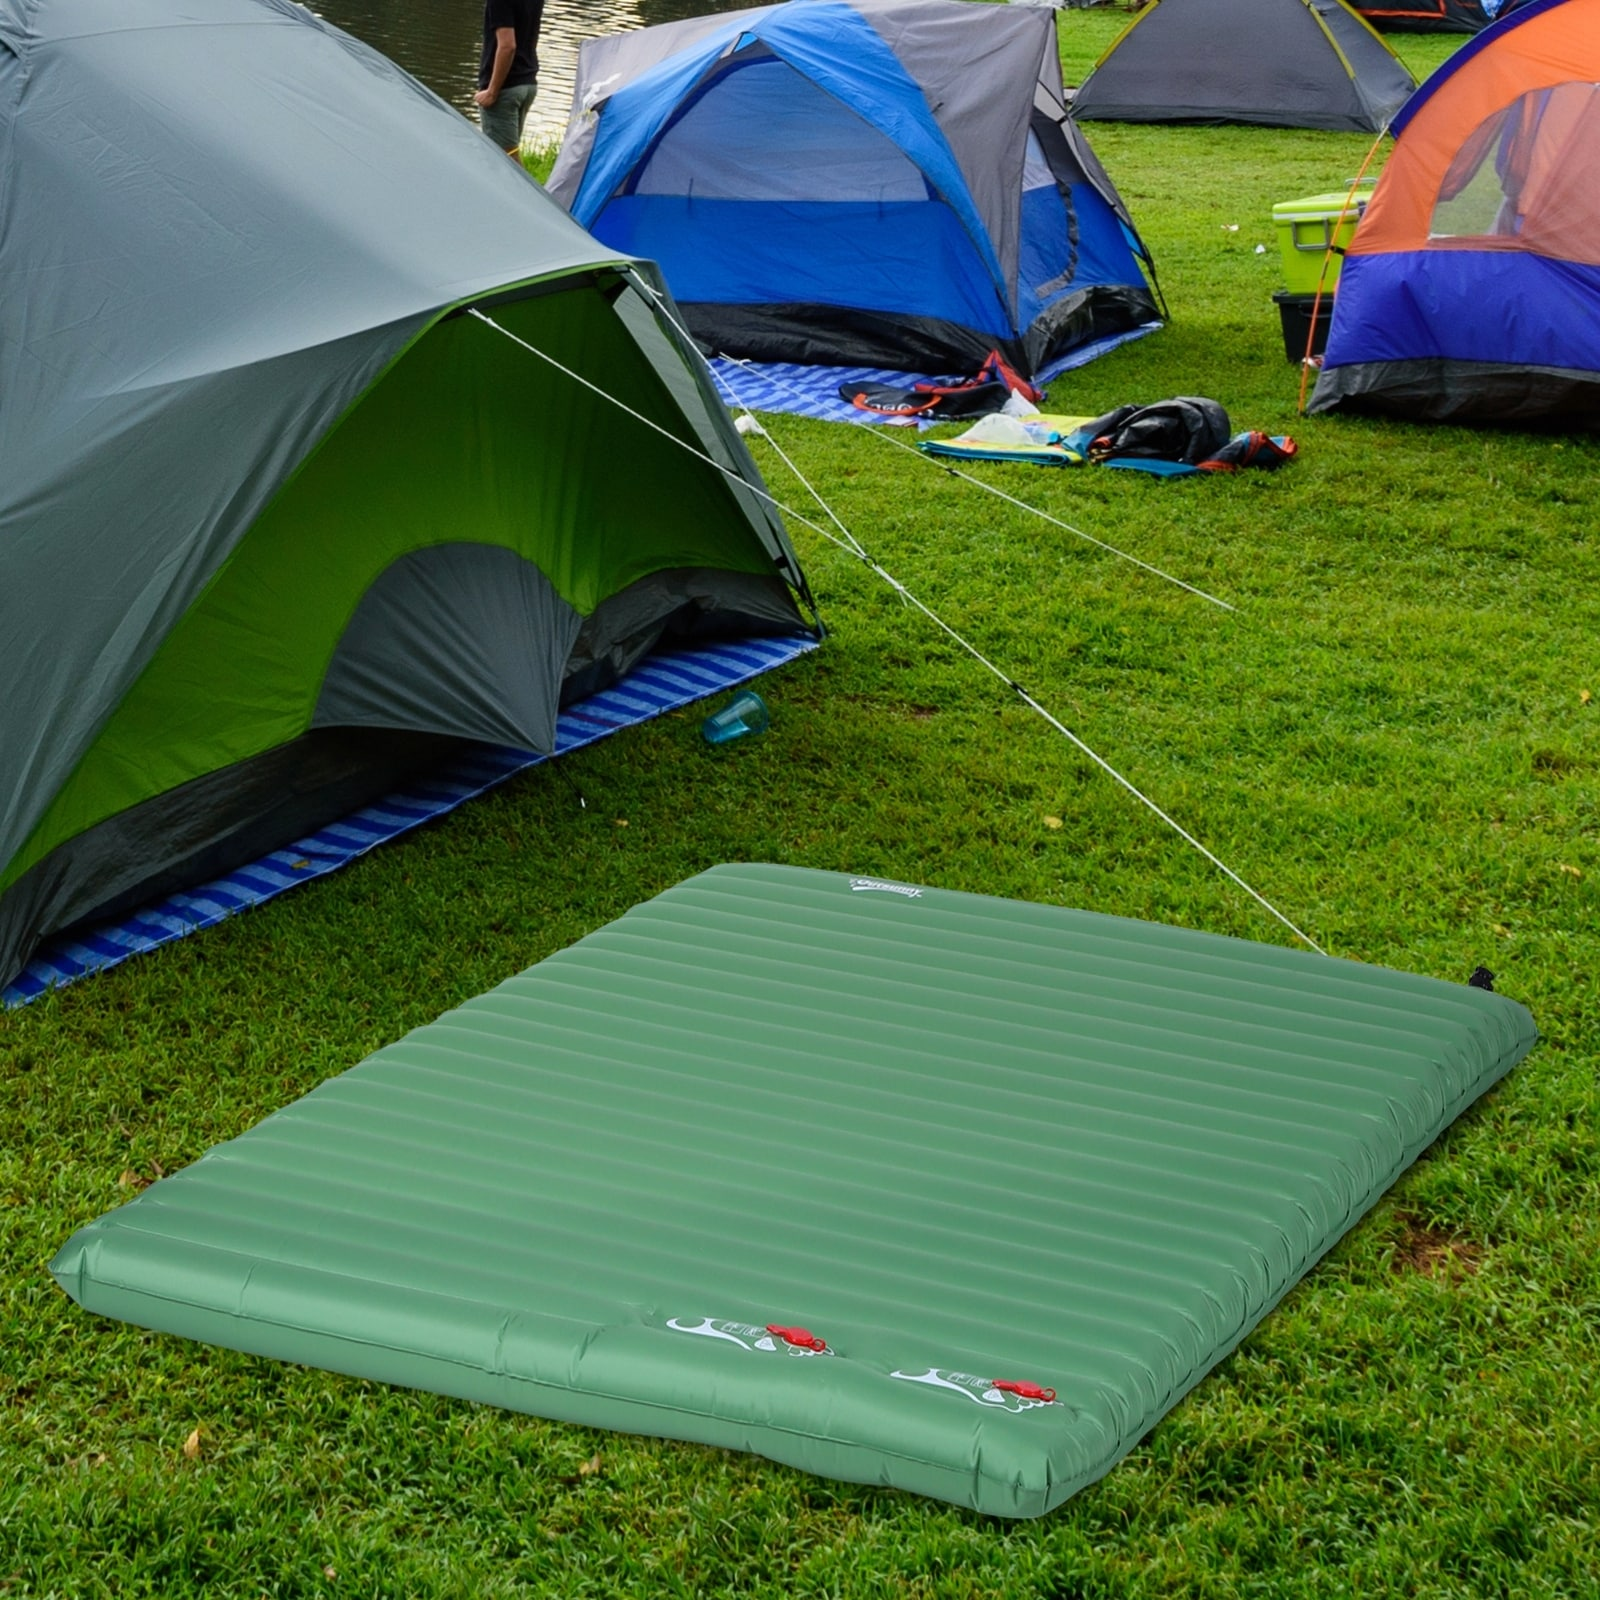 What Is The Best Thermarest Sleeping Pad On The Market Right Now